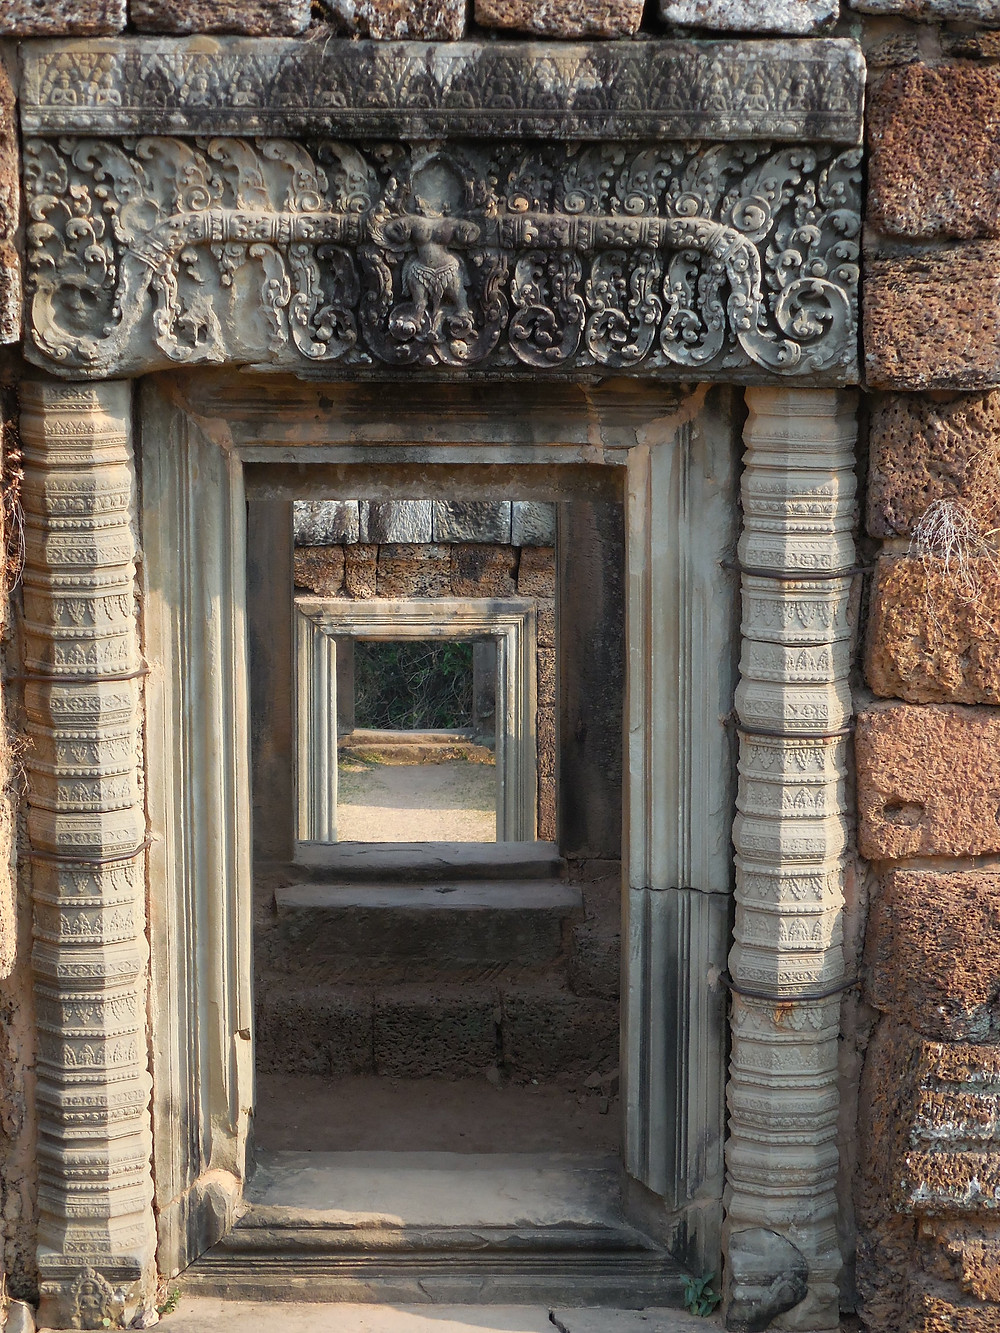 There are a number of doorways, with fascinating designs, at East Mebon